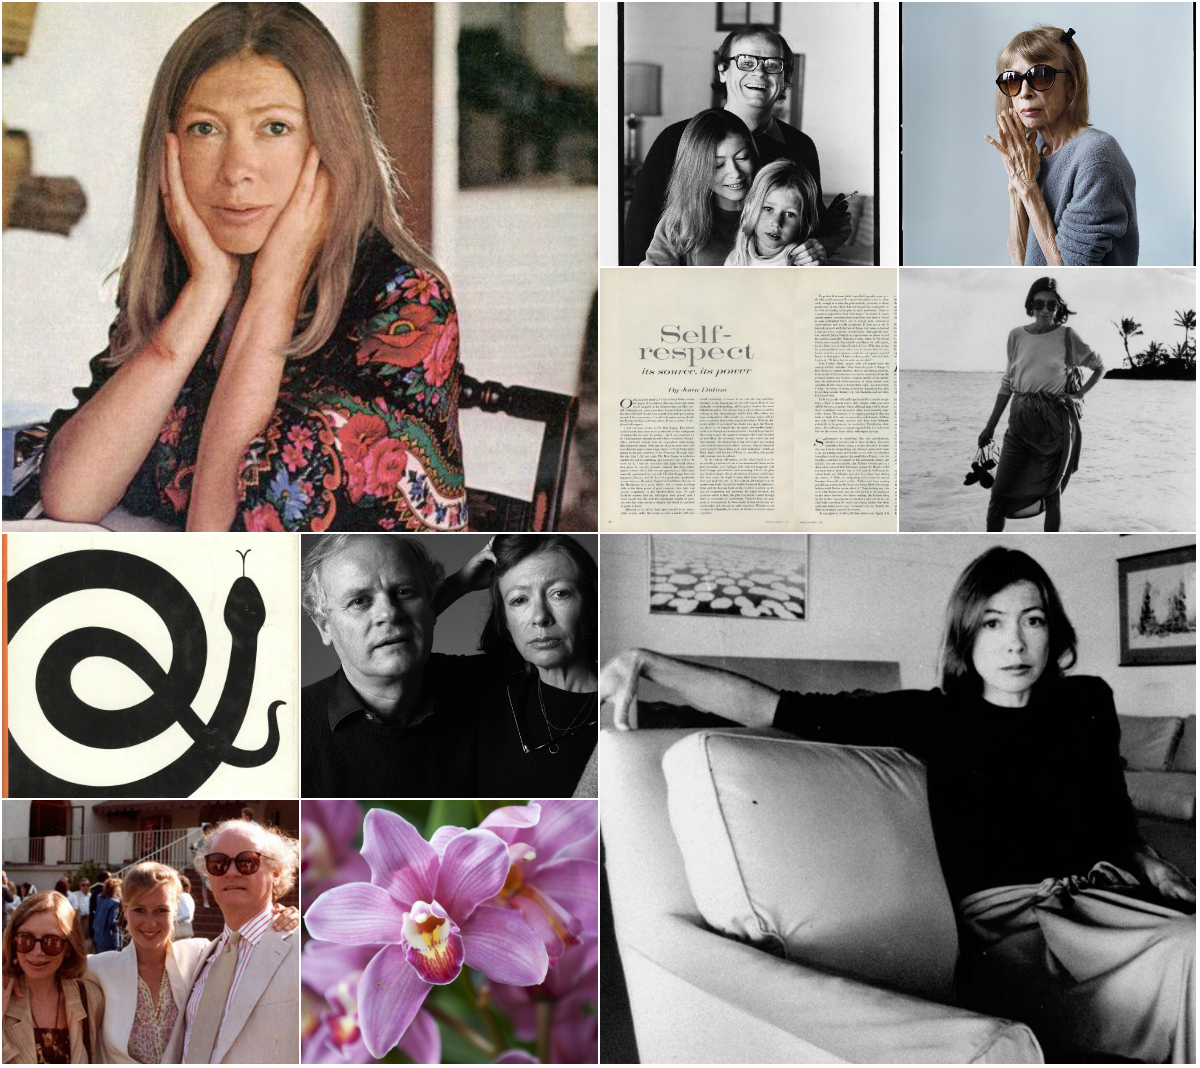 """on self respect joan didion full essay Within the essay """"on self-respect"""" joan didion uses cultural references, imagery and syntax to achieve her definition of """"self-respect""""  sign up to view the full version view full document this is the end of the preview."""